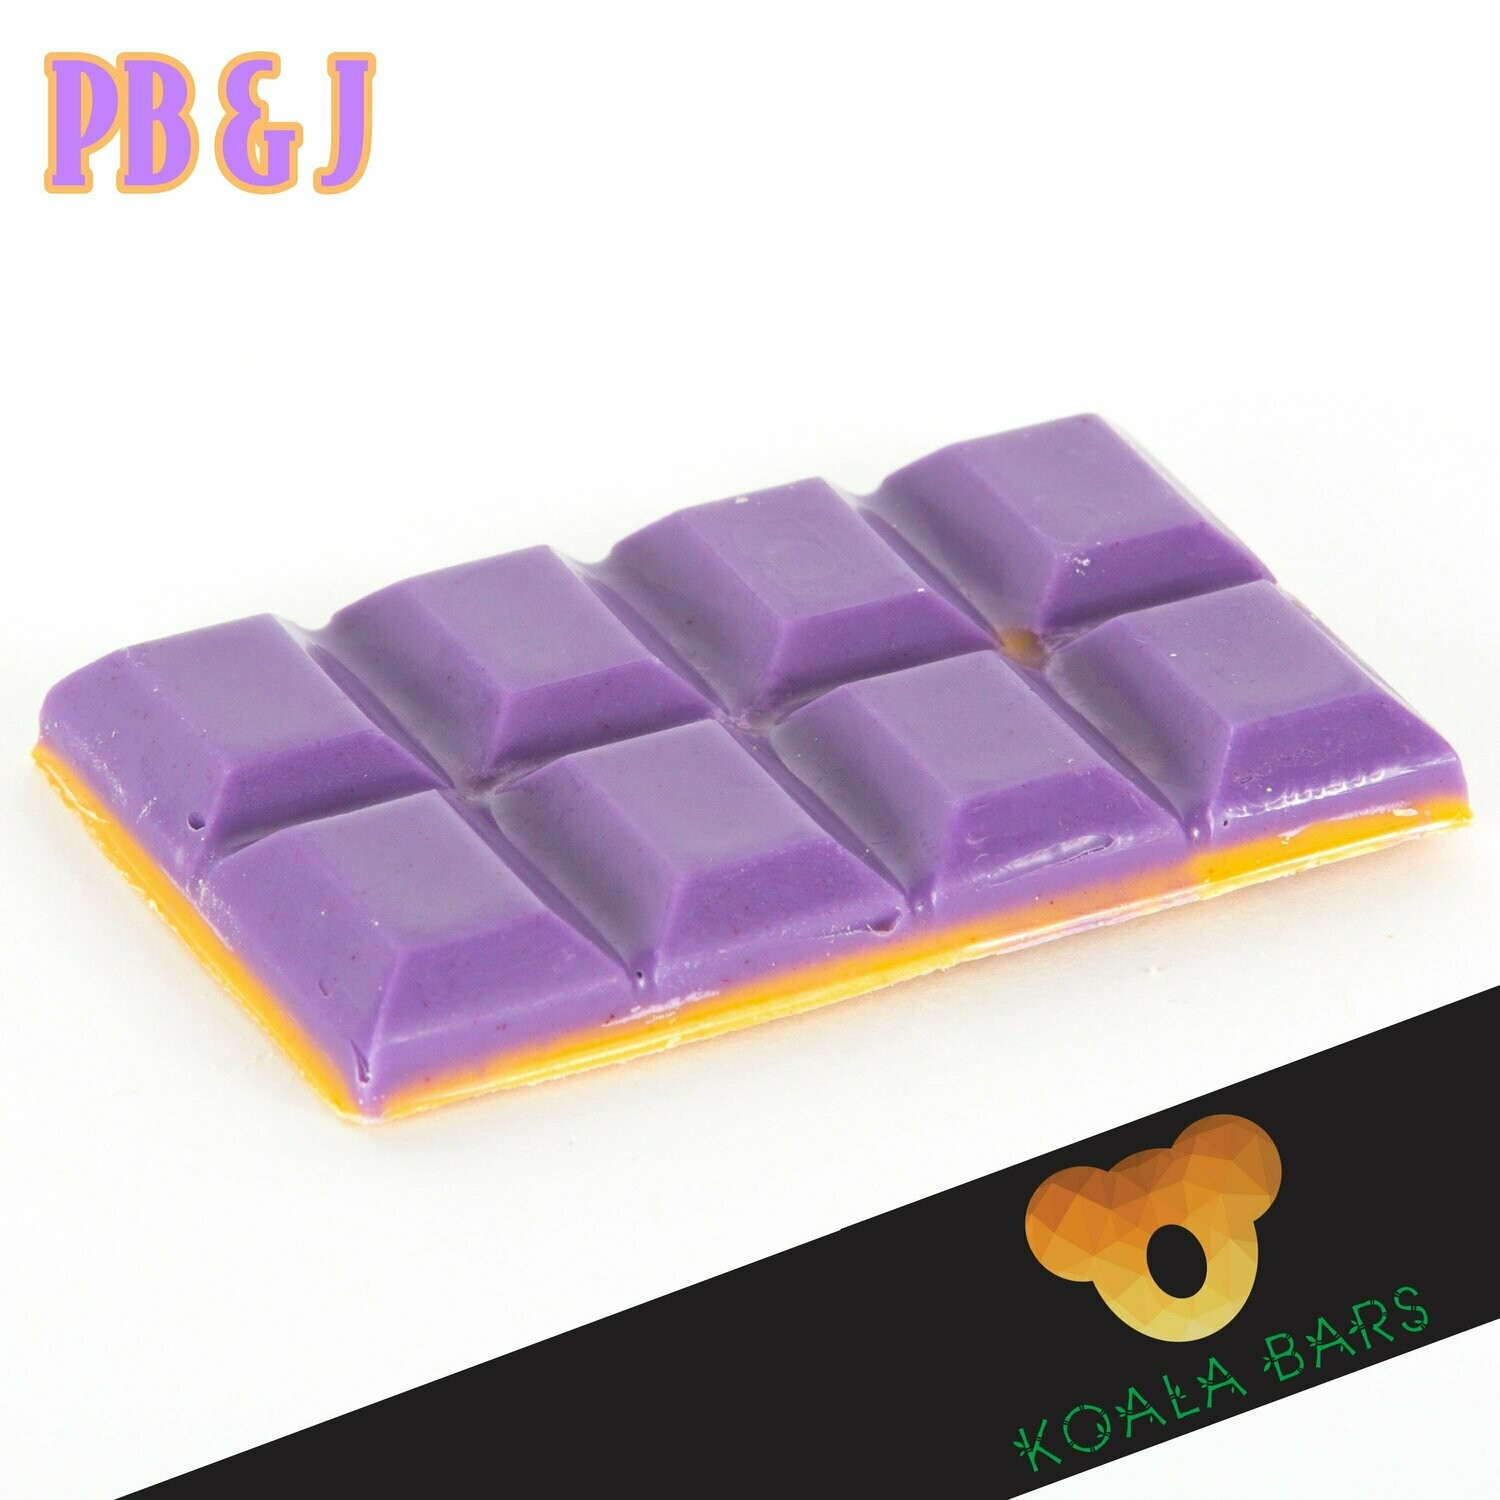 500MG Chocolate Bar - Peanut Butter & Jelly